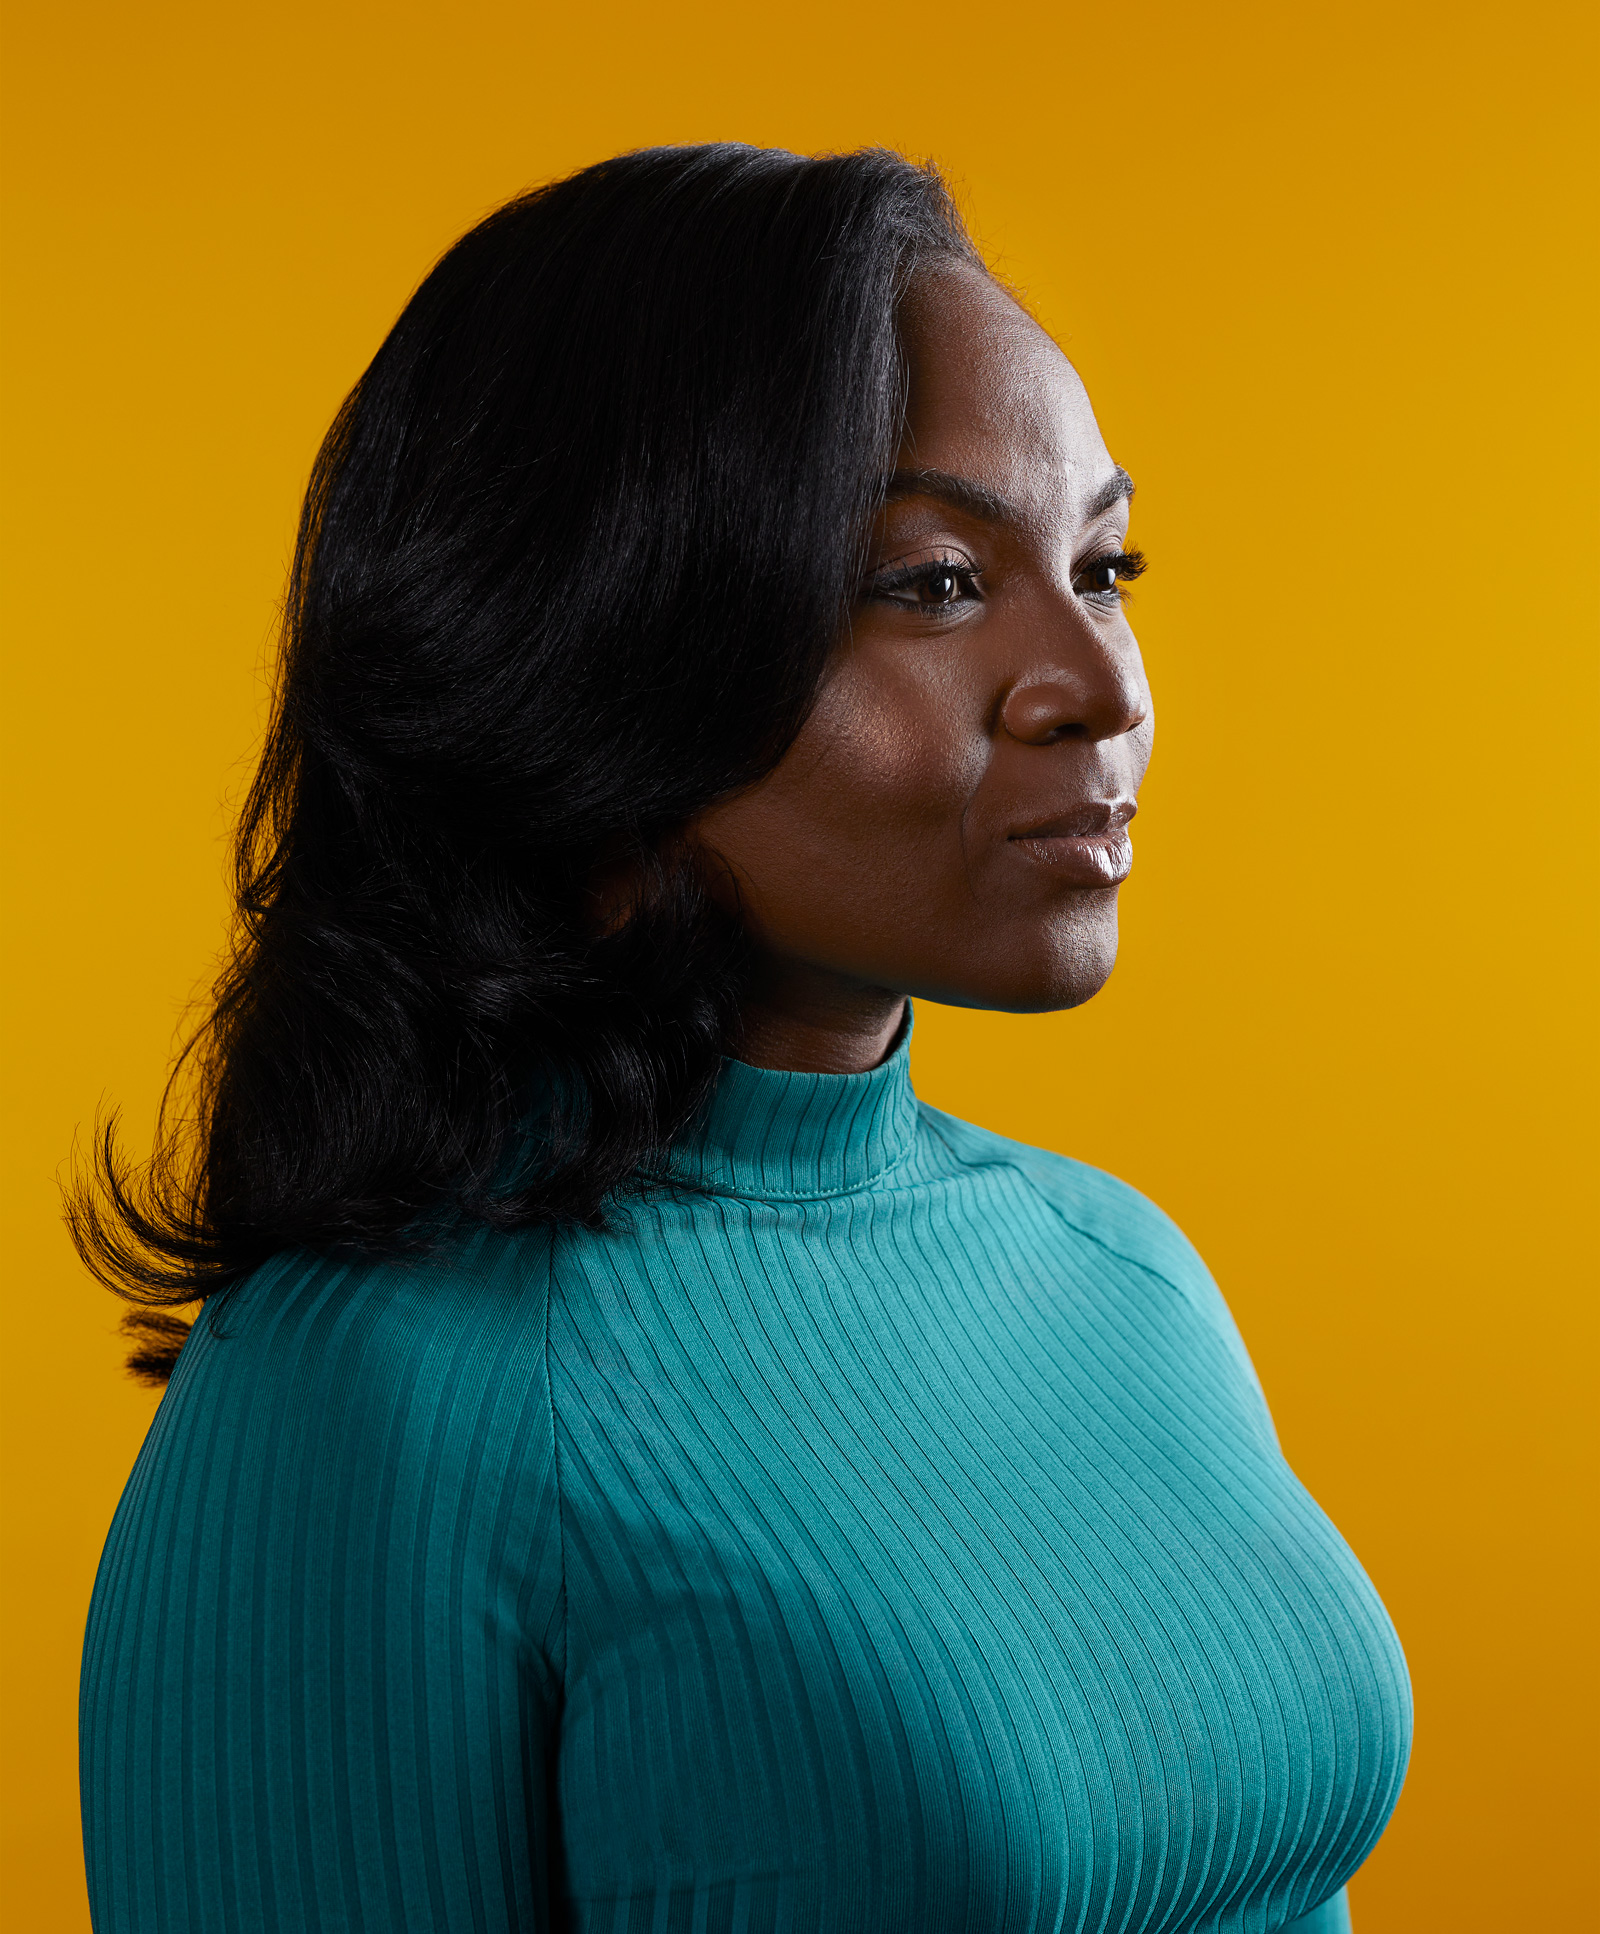 Kizzmekia Corbett wearing a longsleeve, teal turtleneck dress, looks off camera with a serious and powerful expression.